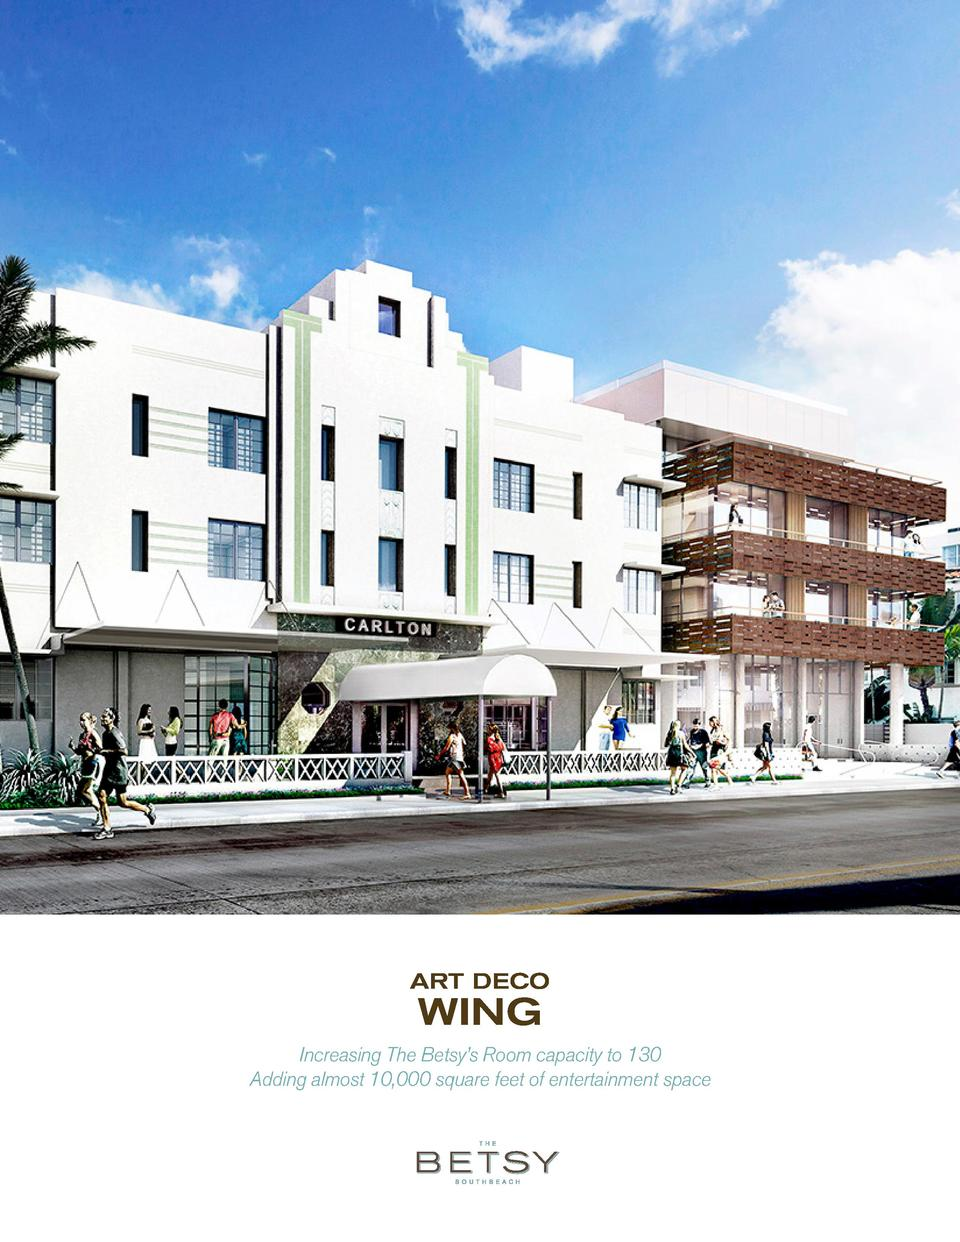 ART DECO  WING  Increasing The Betsy   s Room capacity to 130 Adding almost 10,000 square feet of entertainment space